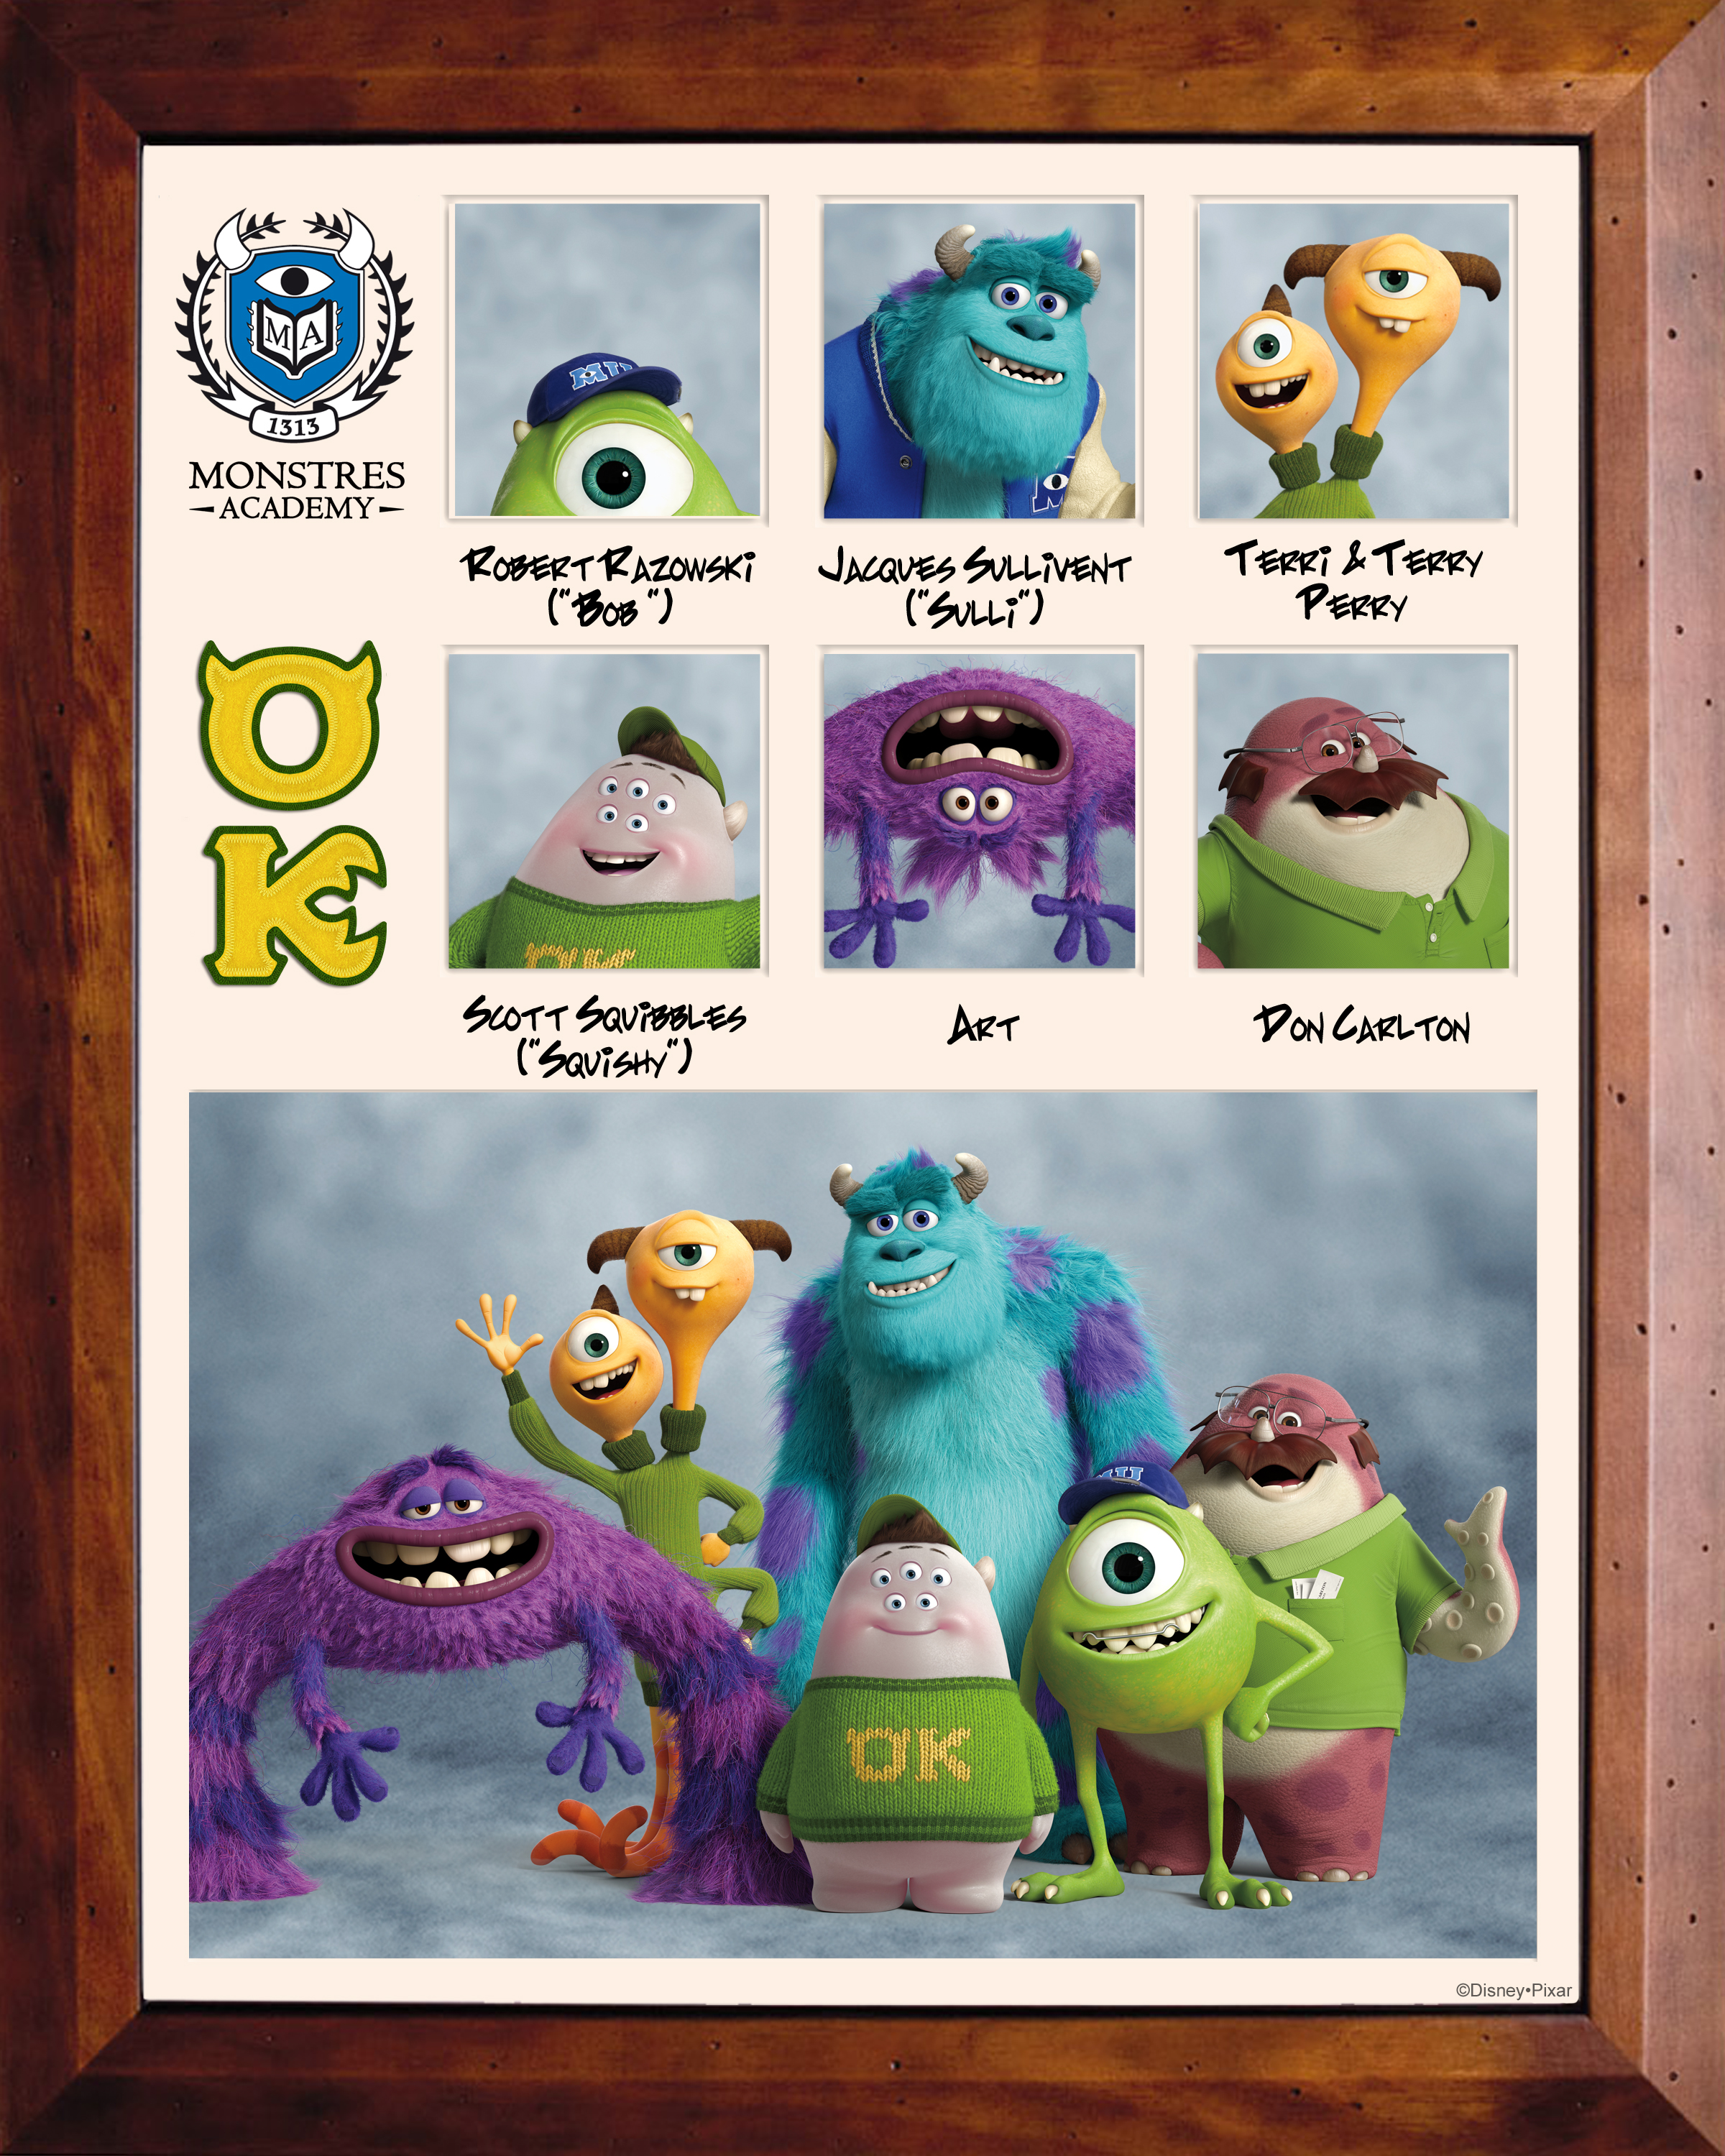 pixar planet disney monstre academy university affiche